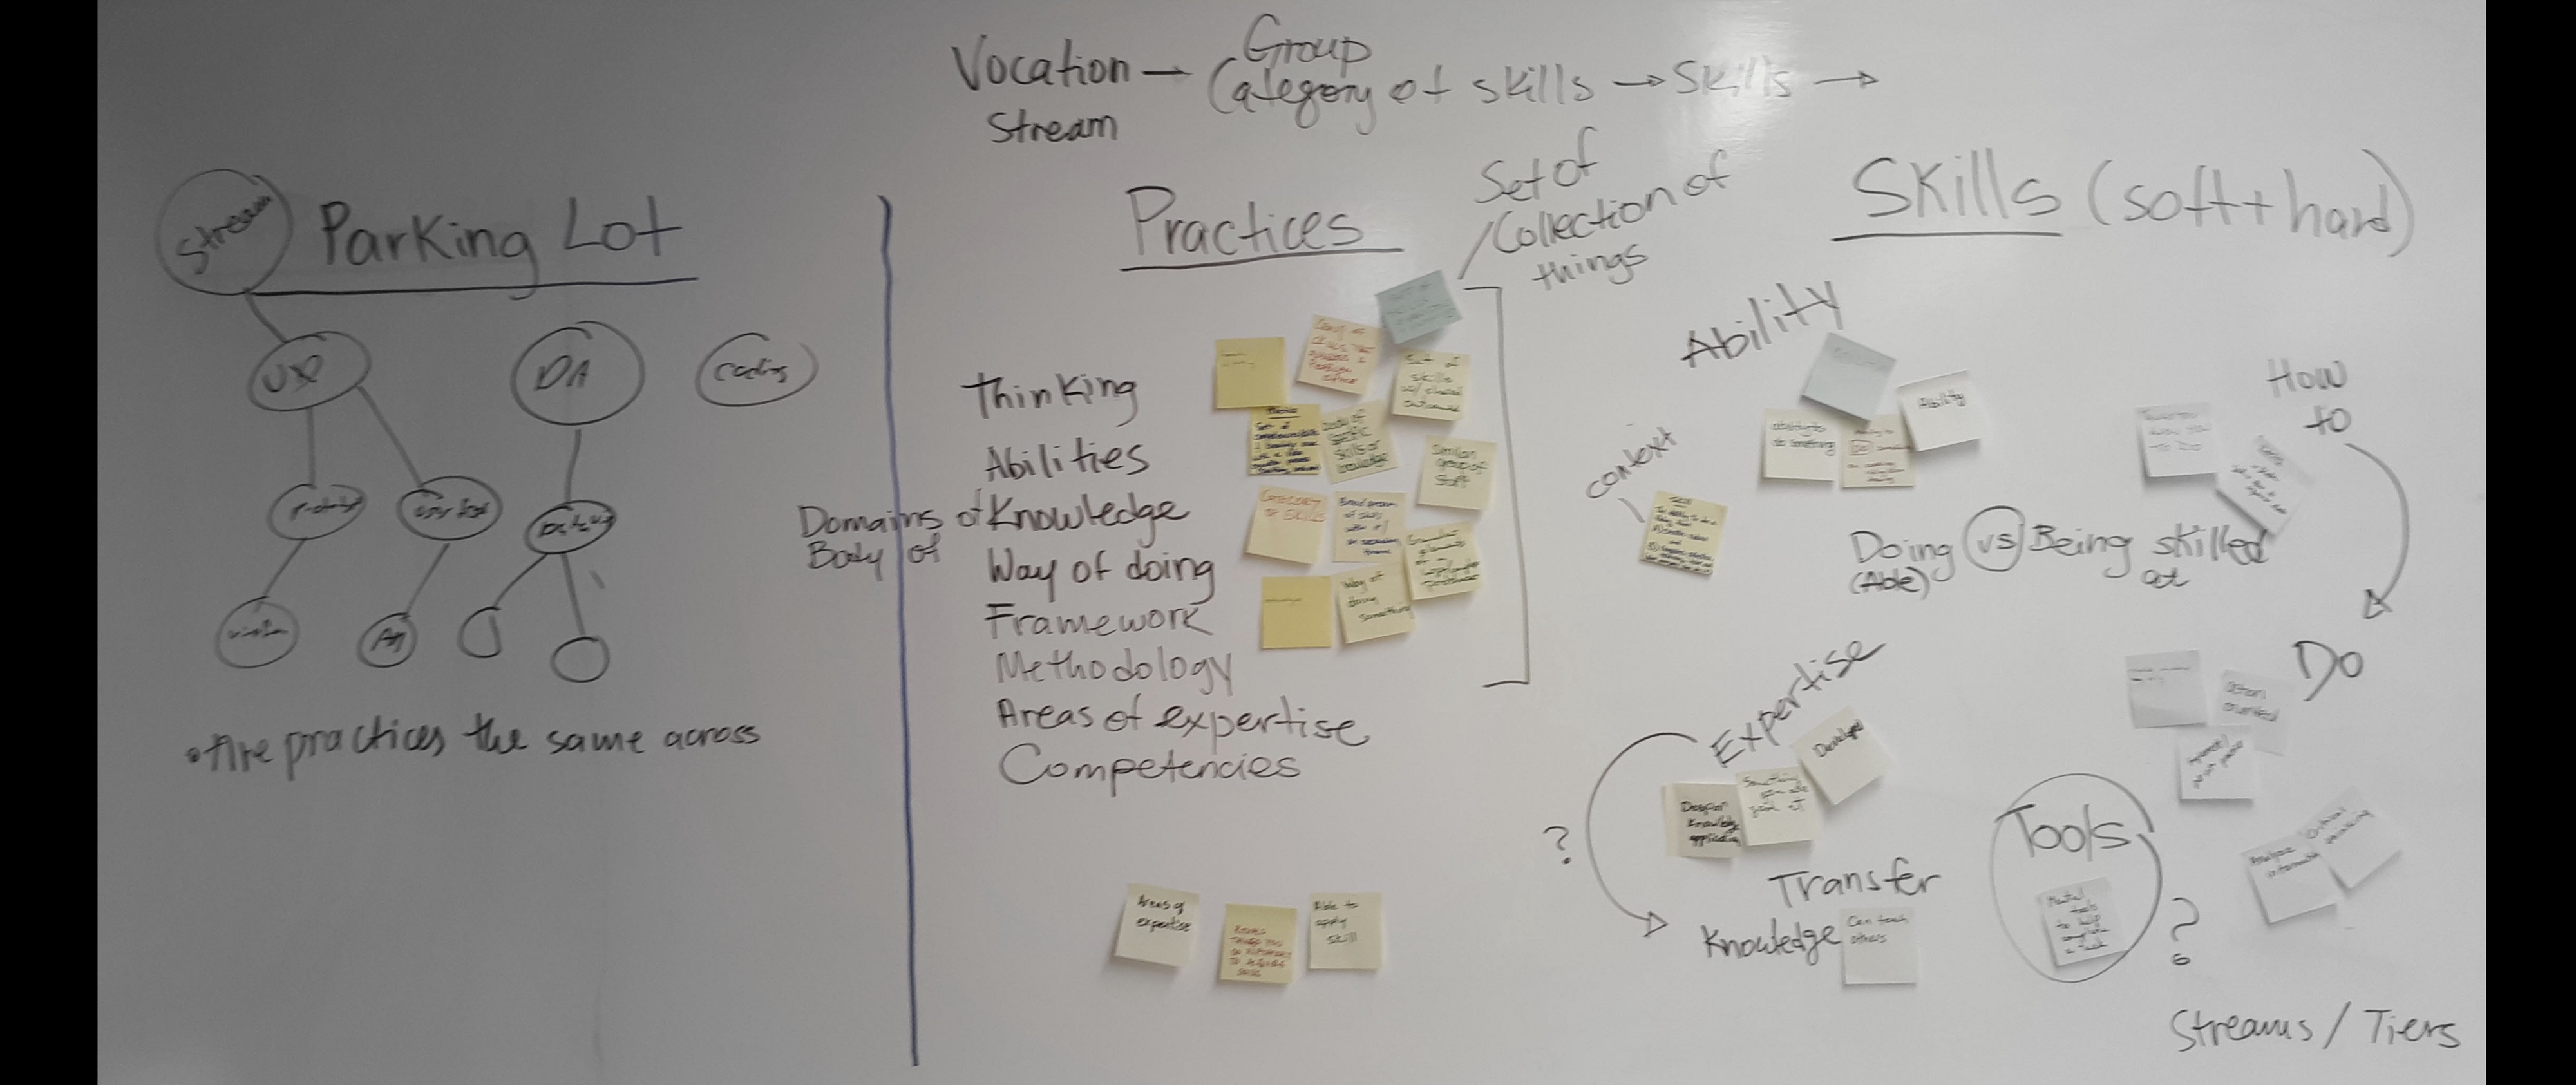 Photo of a whiteboard with terms Practices and Skills and the many synonyms that come to mind for each.